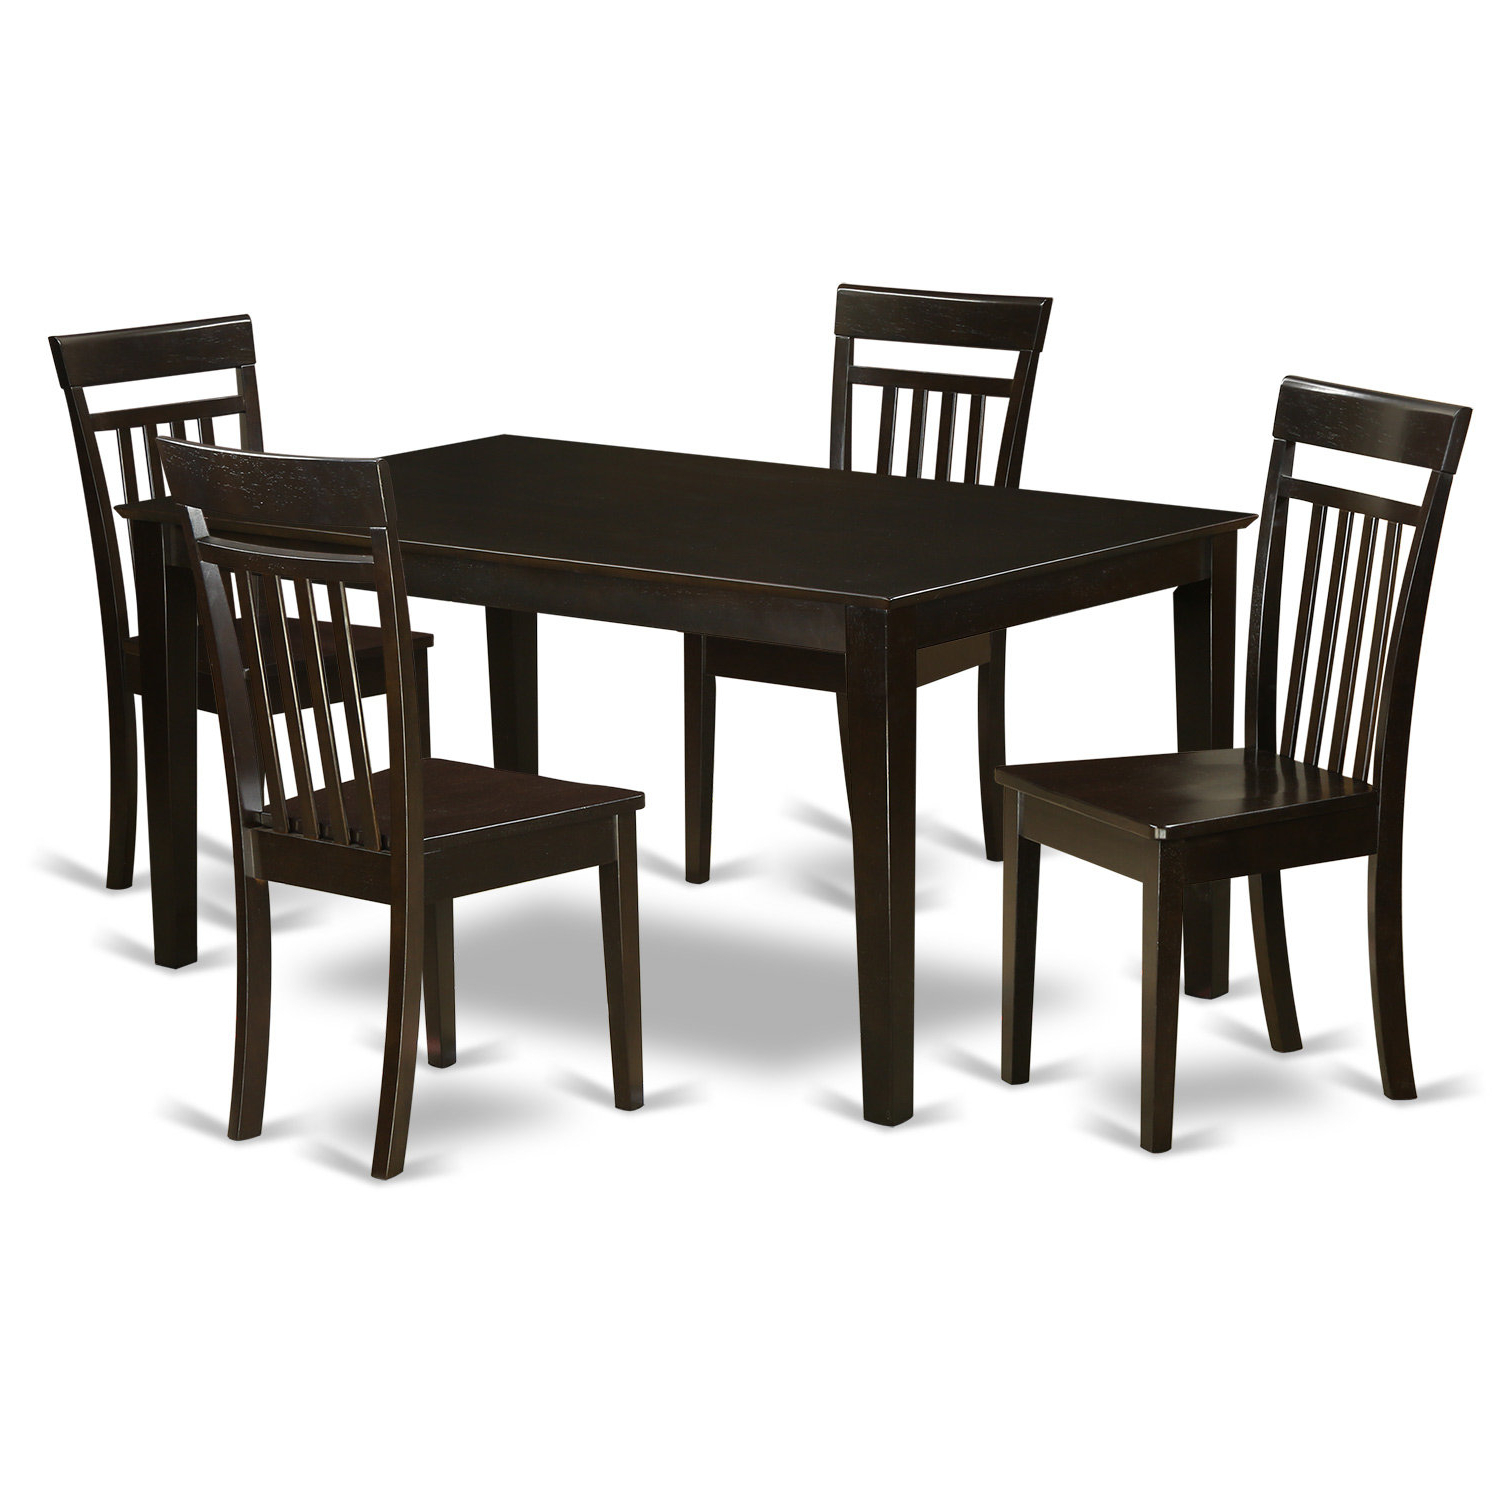 Smyrna 3 Piece Dining Sets Throughout Famous Smyrna 5 Piece Dining Set (View 5 of 20)